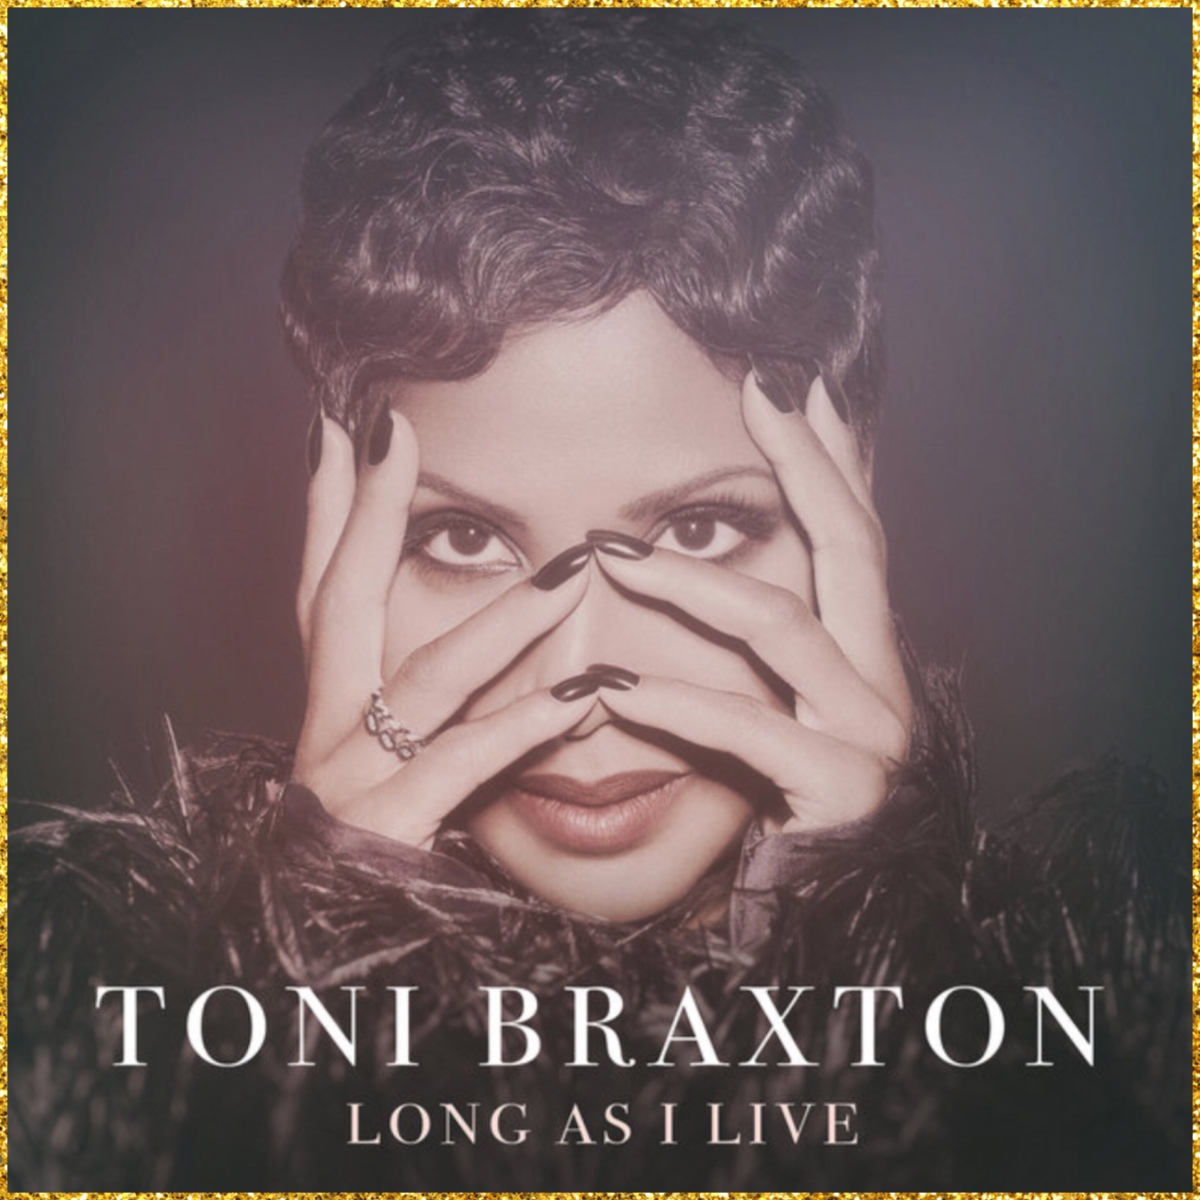 New music: Toni Braxton & Ne-Yo